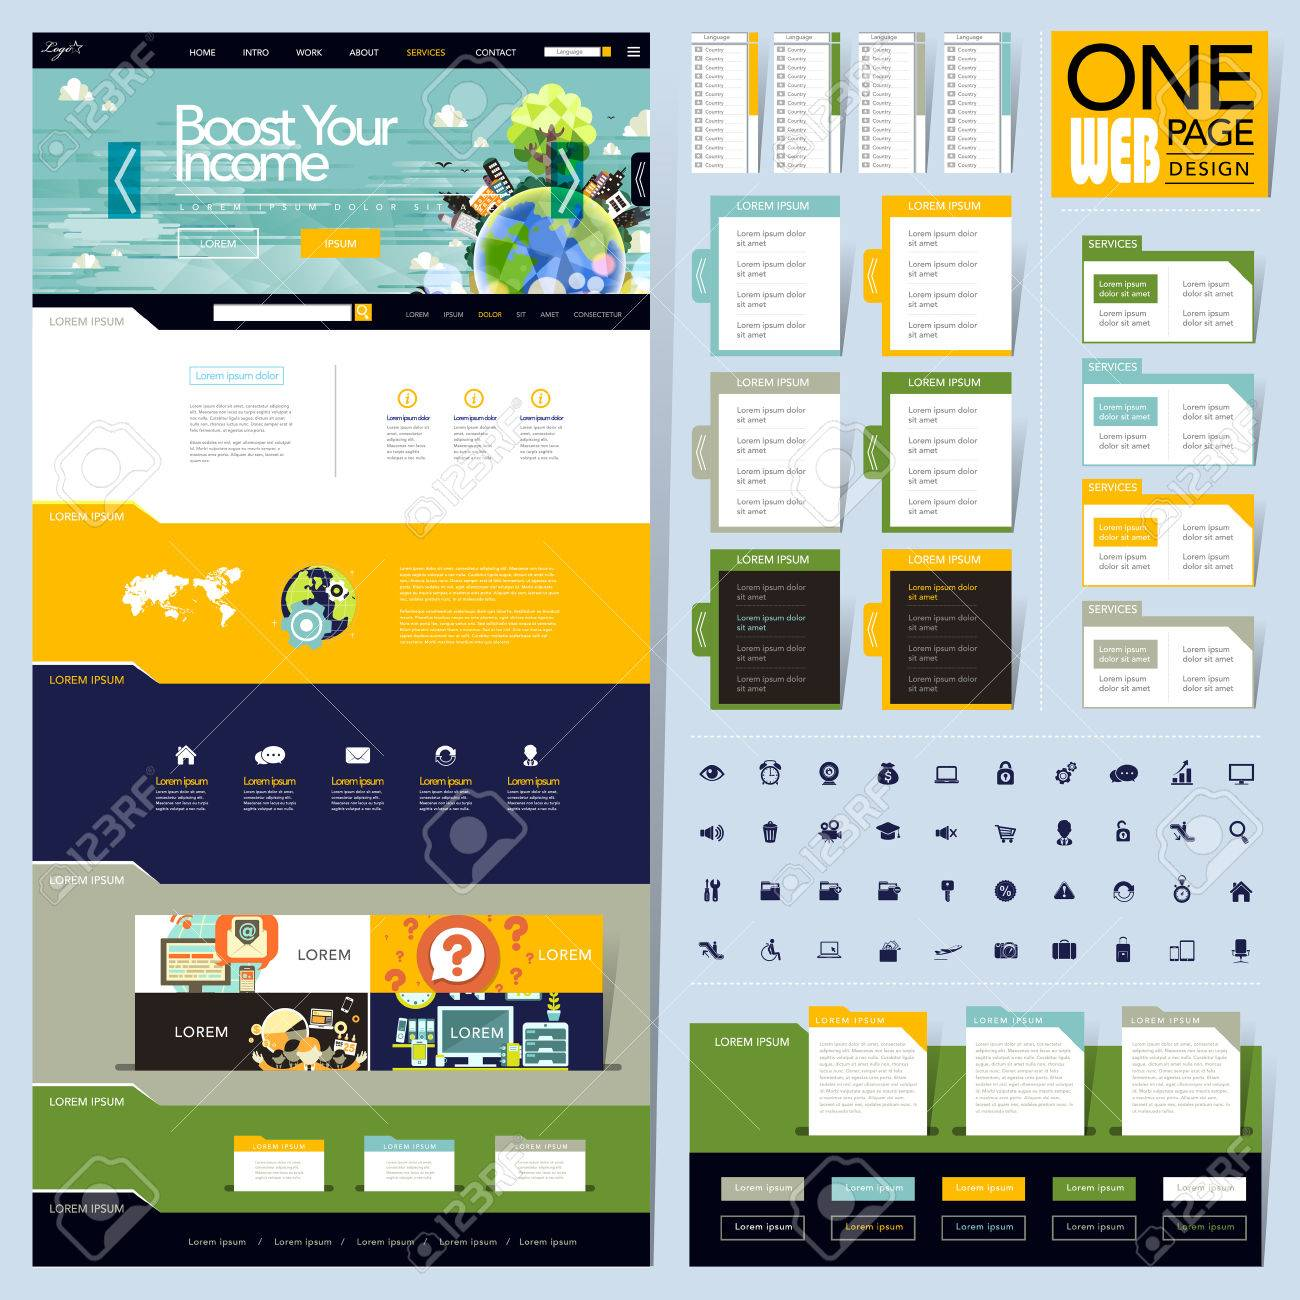 Creative Folder Style One Page Website Design Template Royalty Free ...